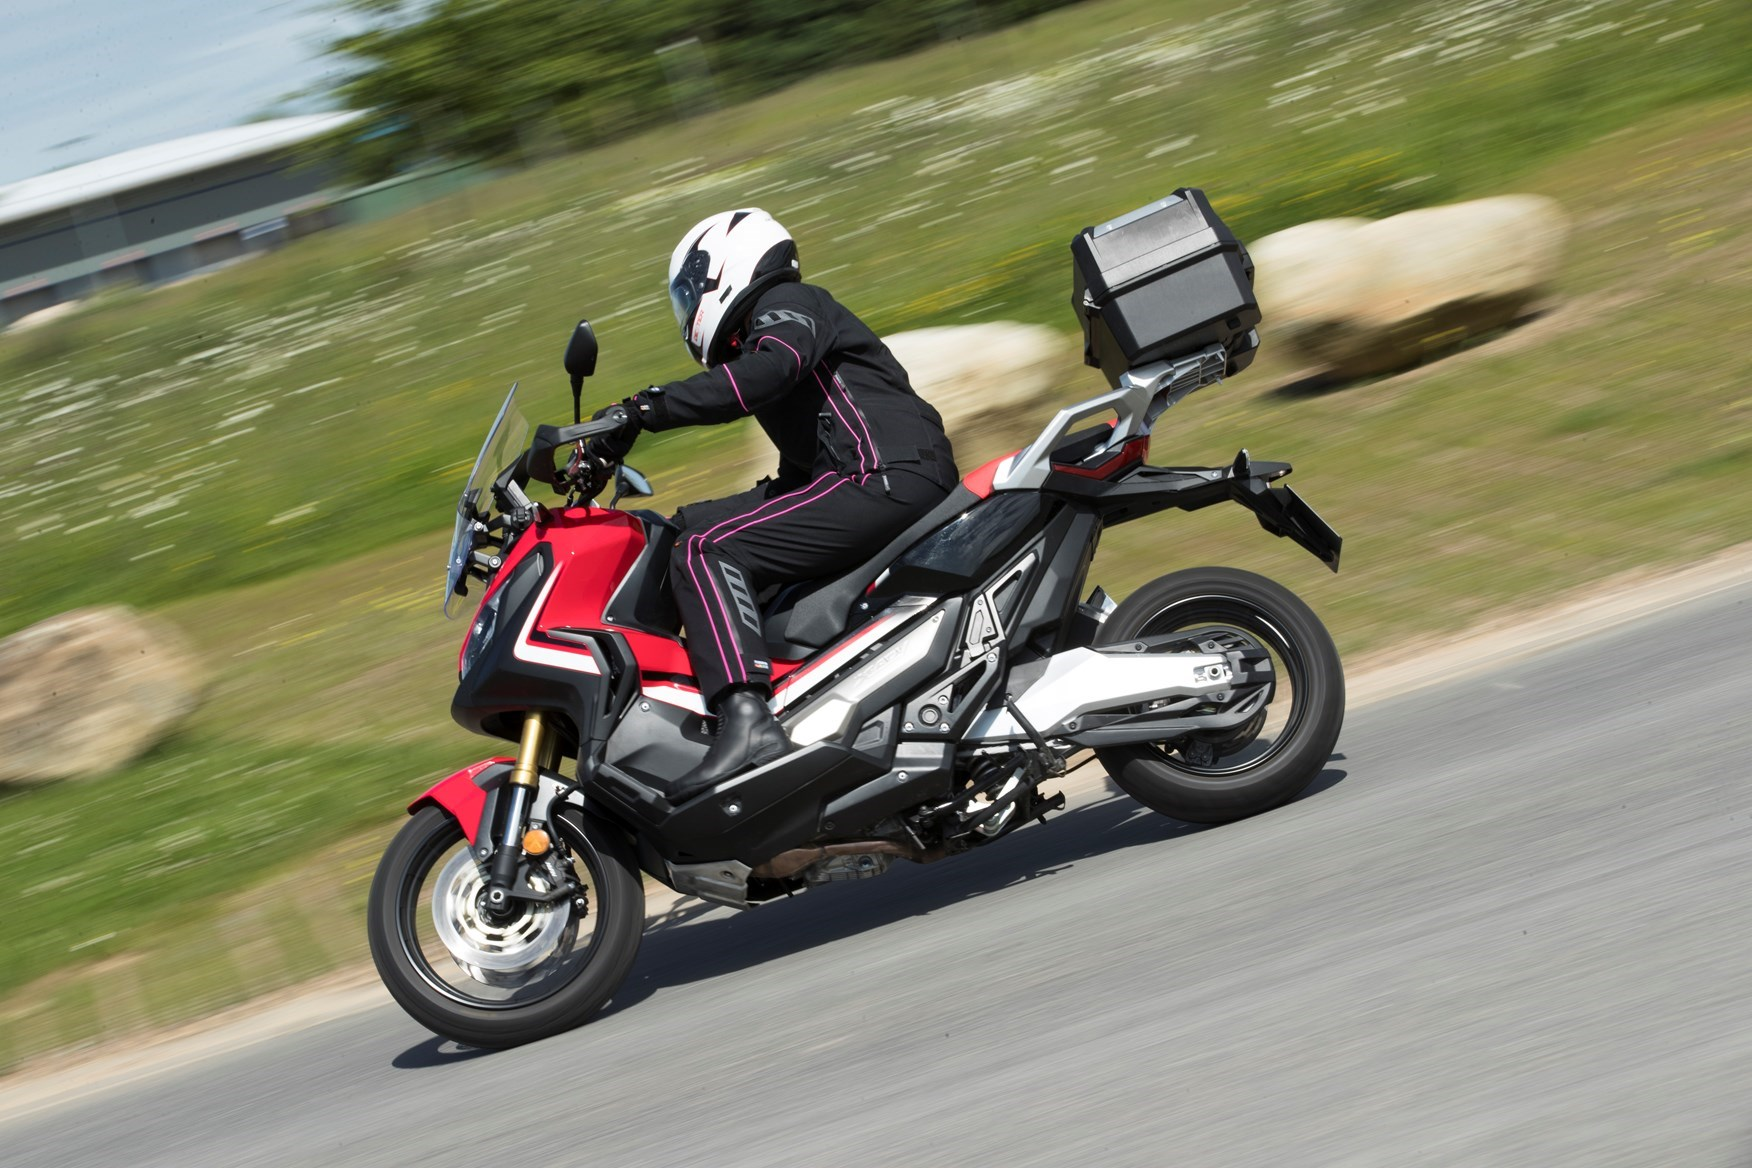 Honda X-ADV 150 Unveiled - Time for Small Adventure Scoots